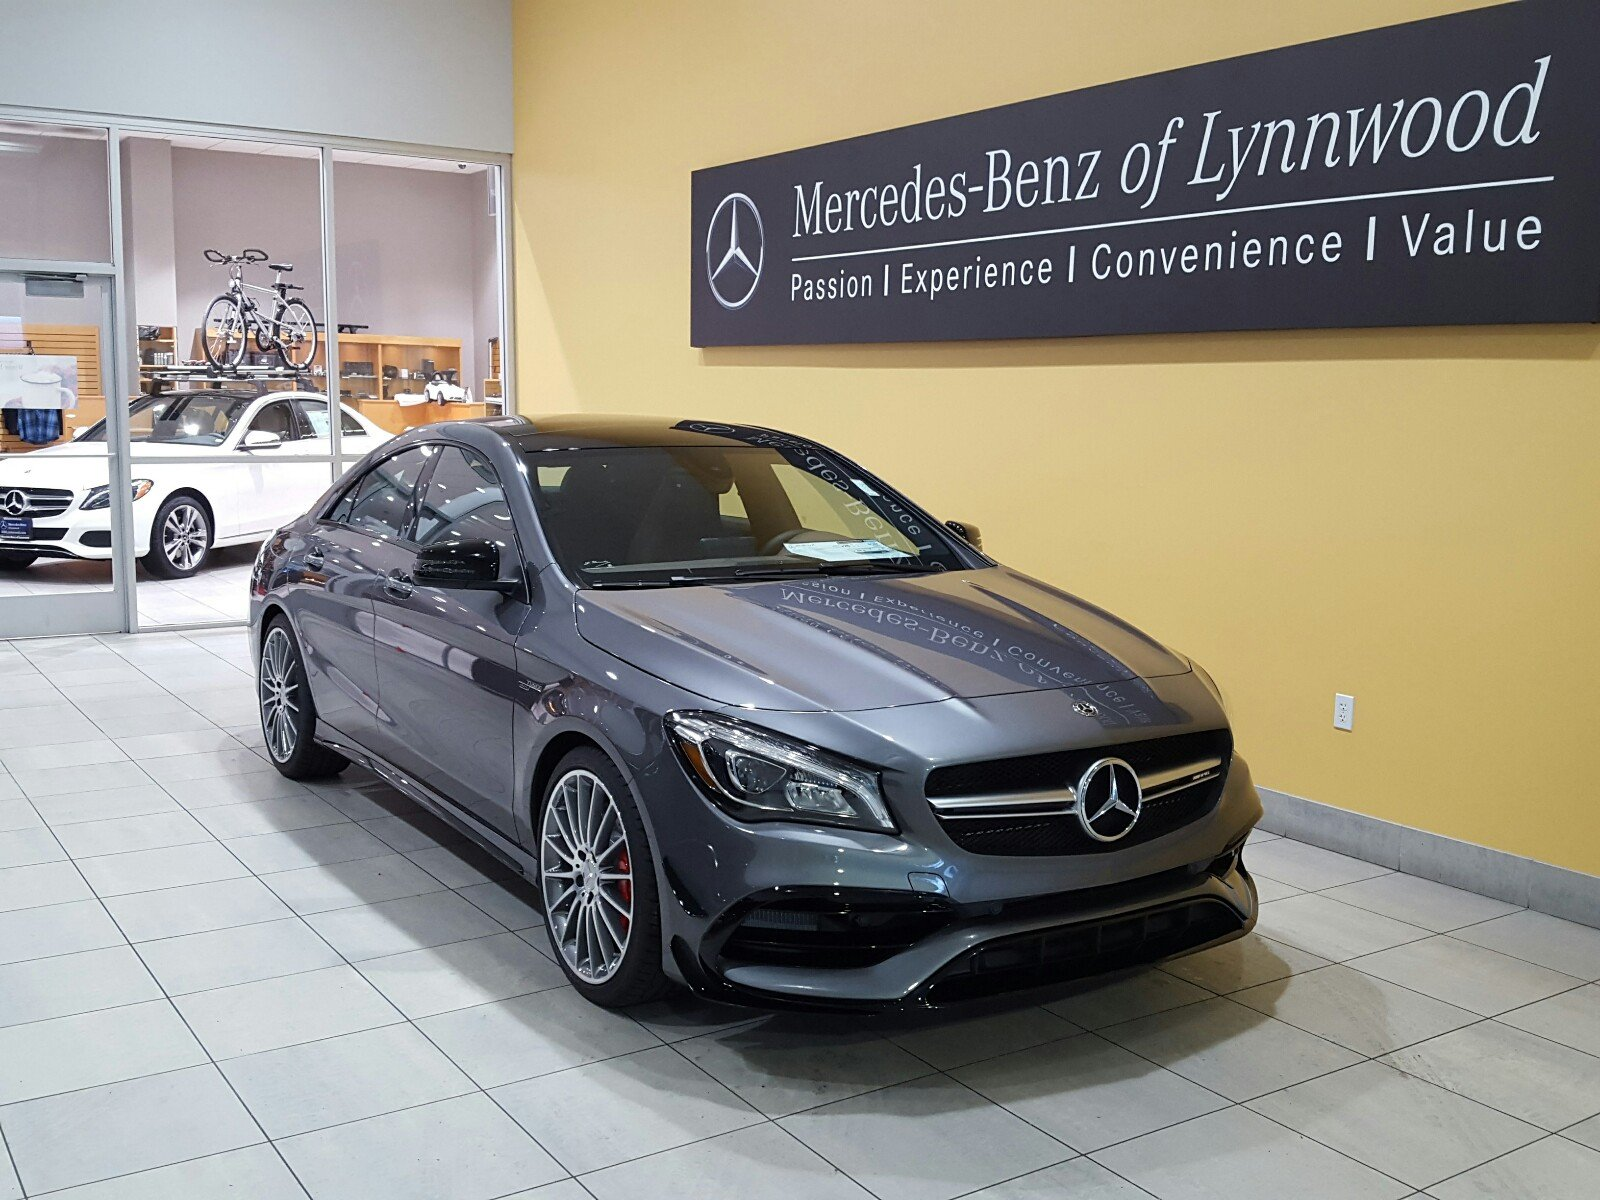 New 2018 mercedes benz cla amg cla 45 4matic coupe coupe for What is the maintenance cost for mercedes benz